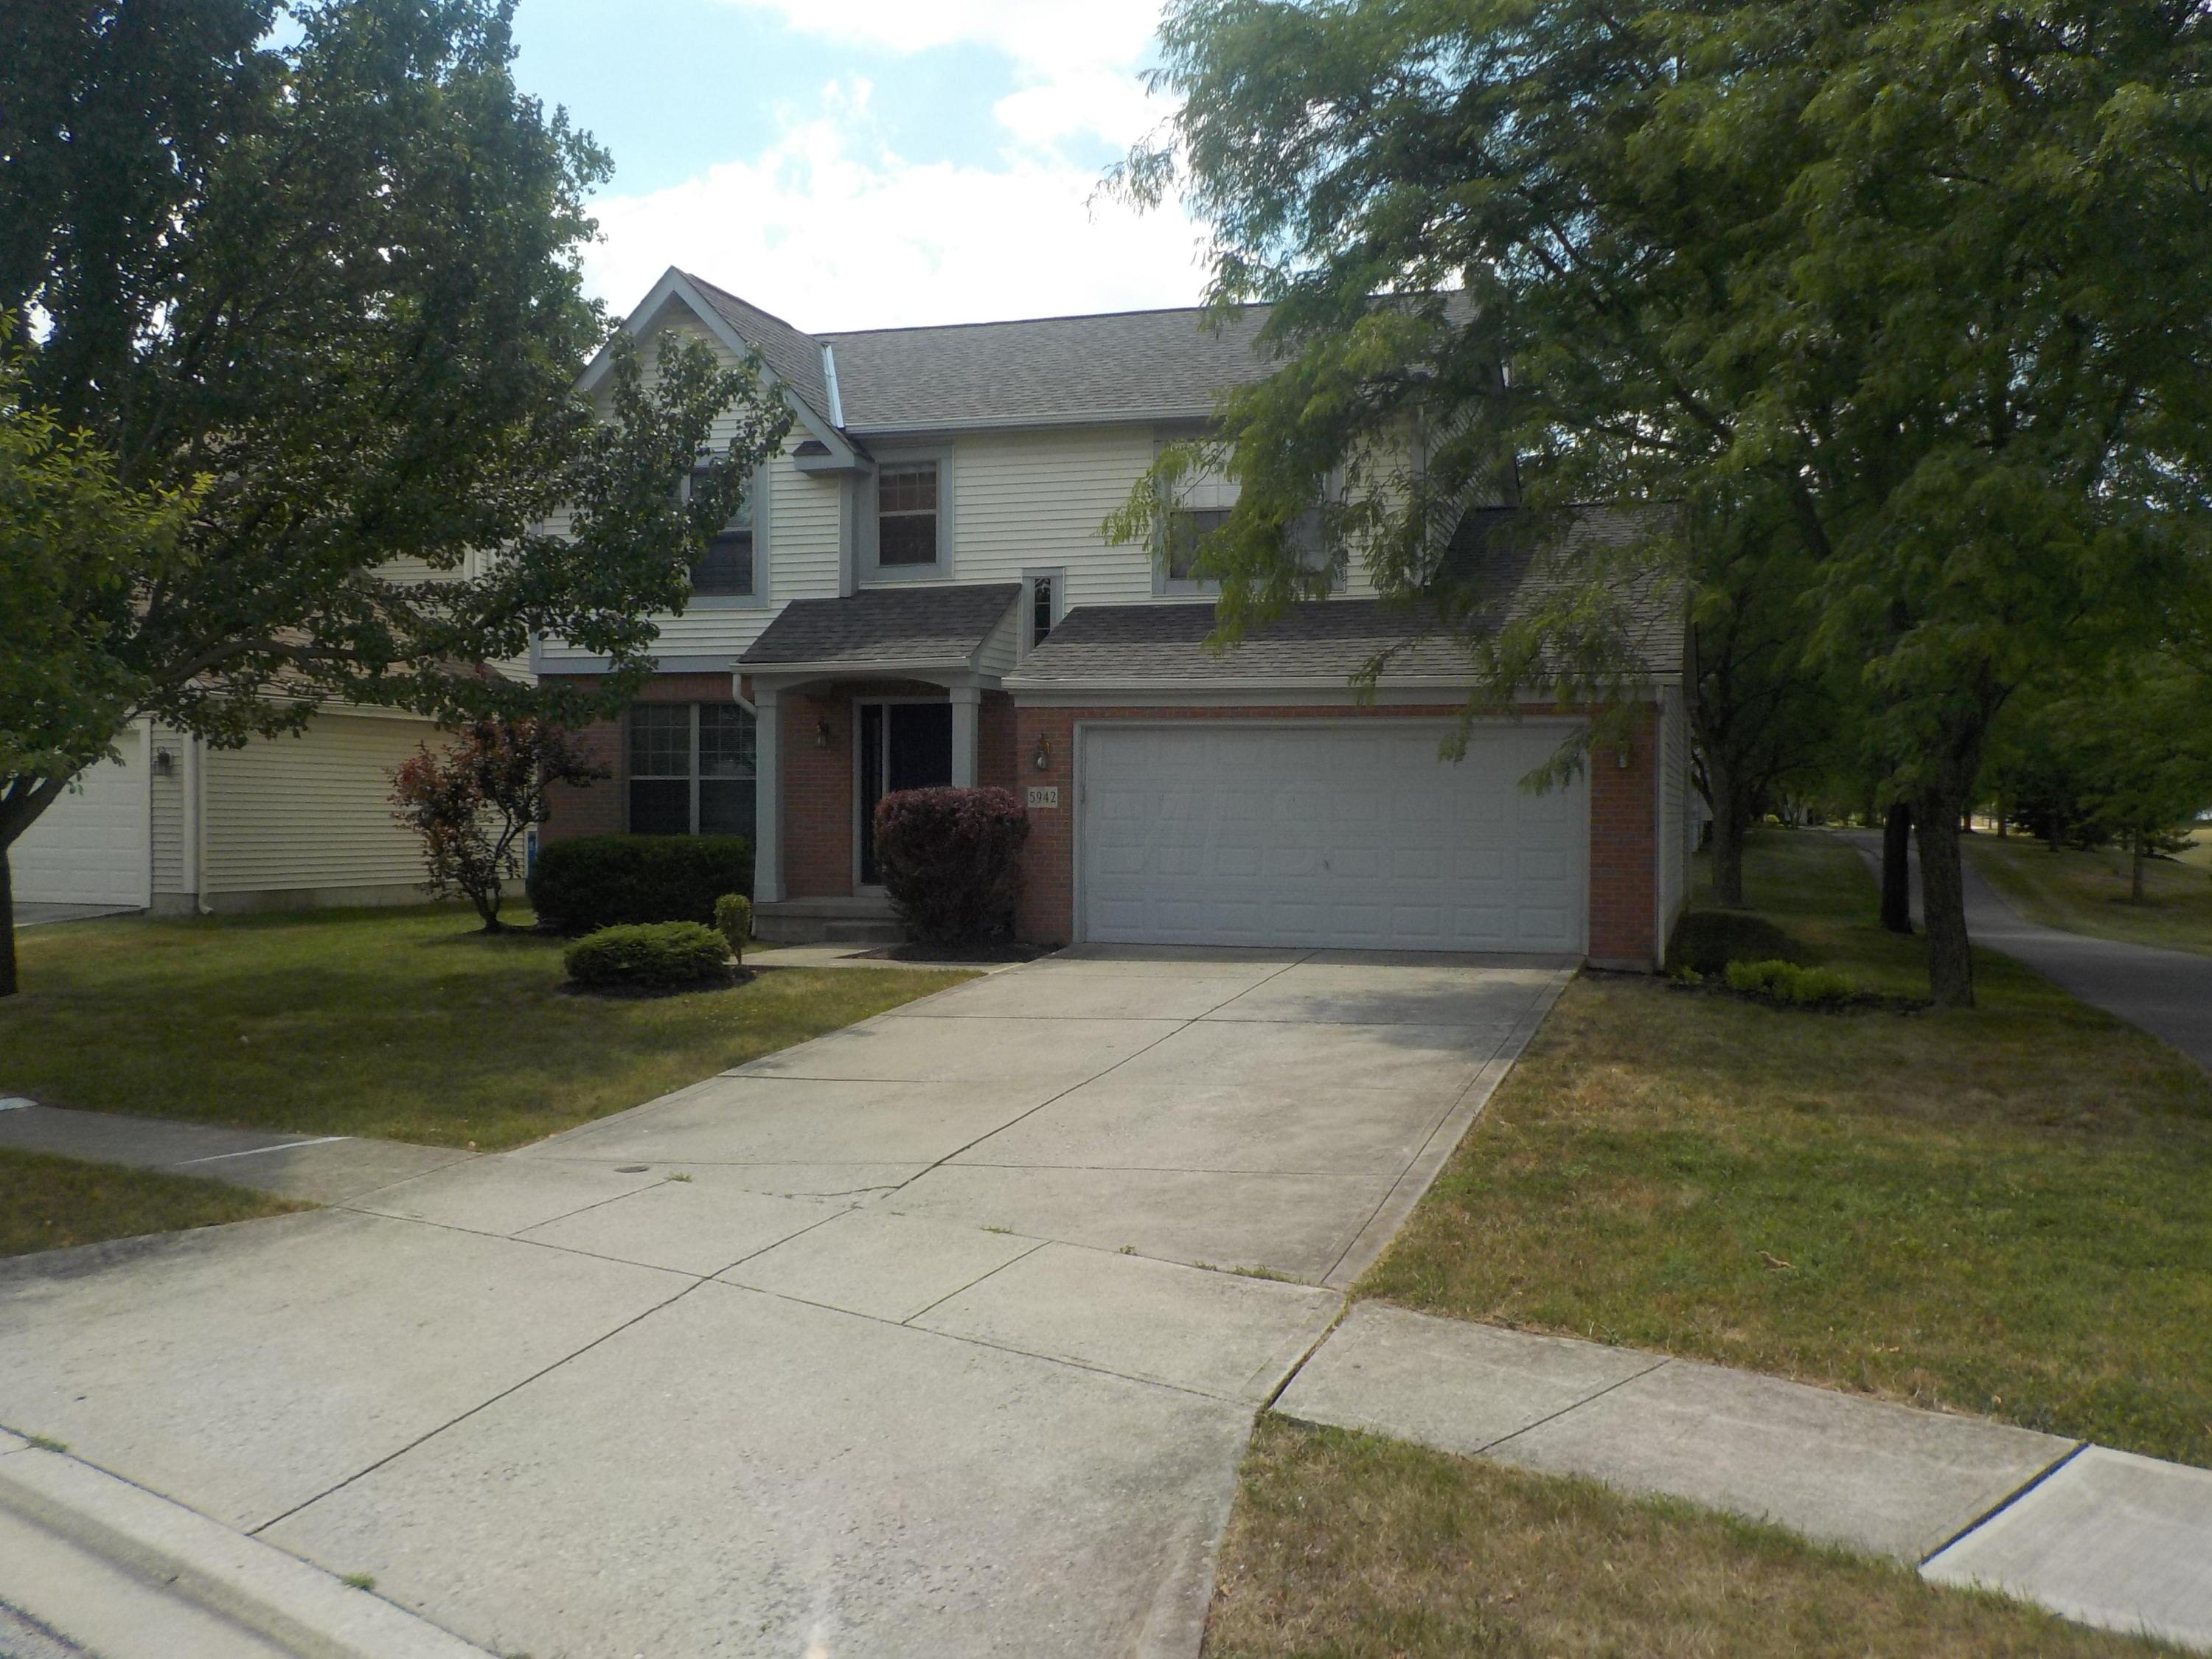 5942 Innovation Drive, Dublin, Ohio 43016, 4 Bedrooms Bedrooms, ,3 BathroomsBathrooms,Residential,For Sale,Innovation,220023358